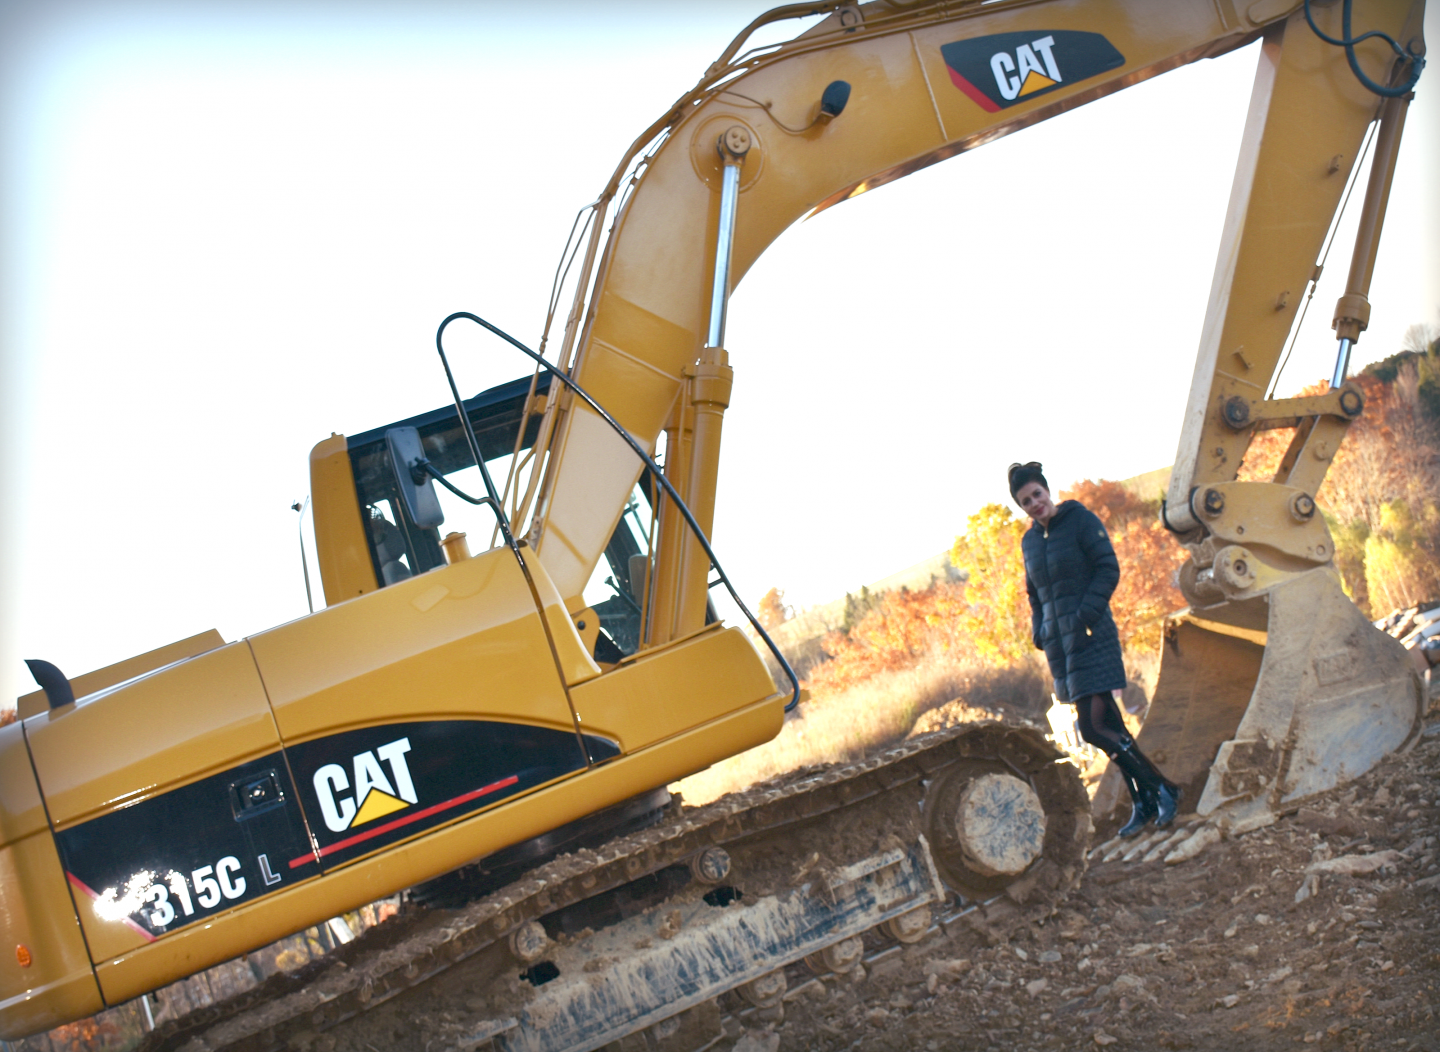 A BLOG SERIES – PART 2 – THE EXCAVATOR